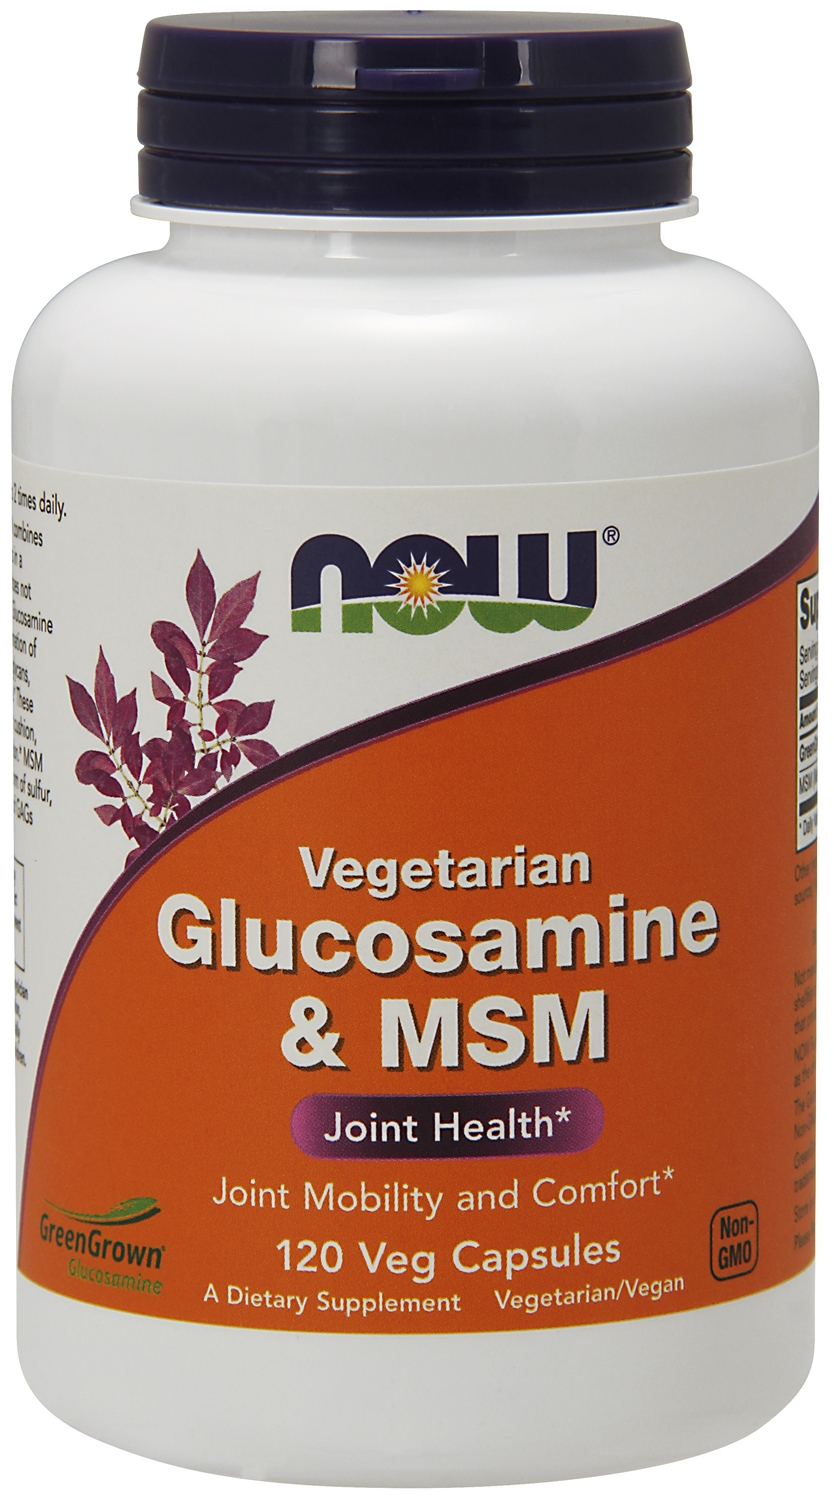 Glucosamine & MSM Vegetarian 240 Vcaps by NOW